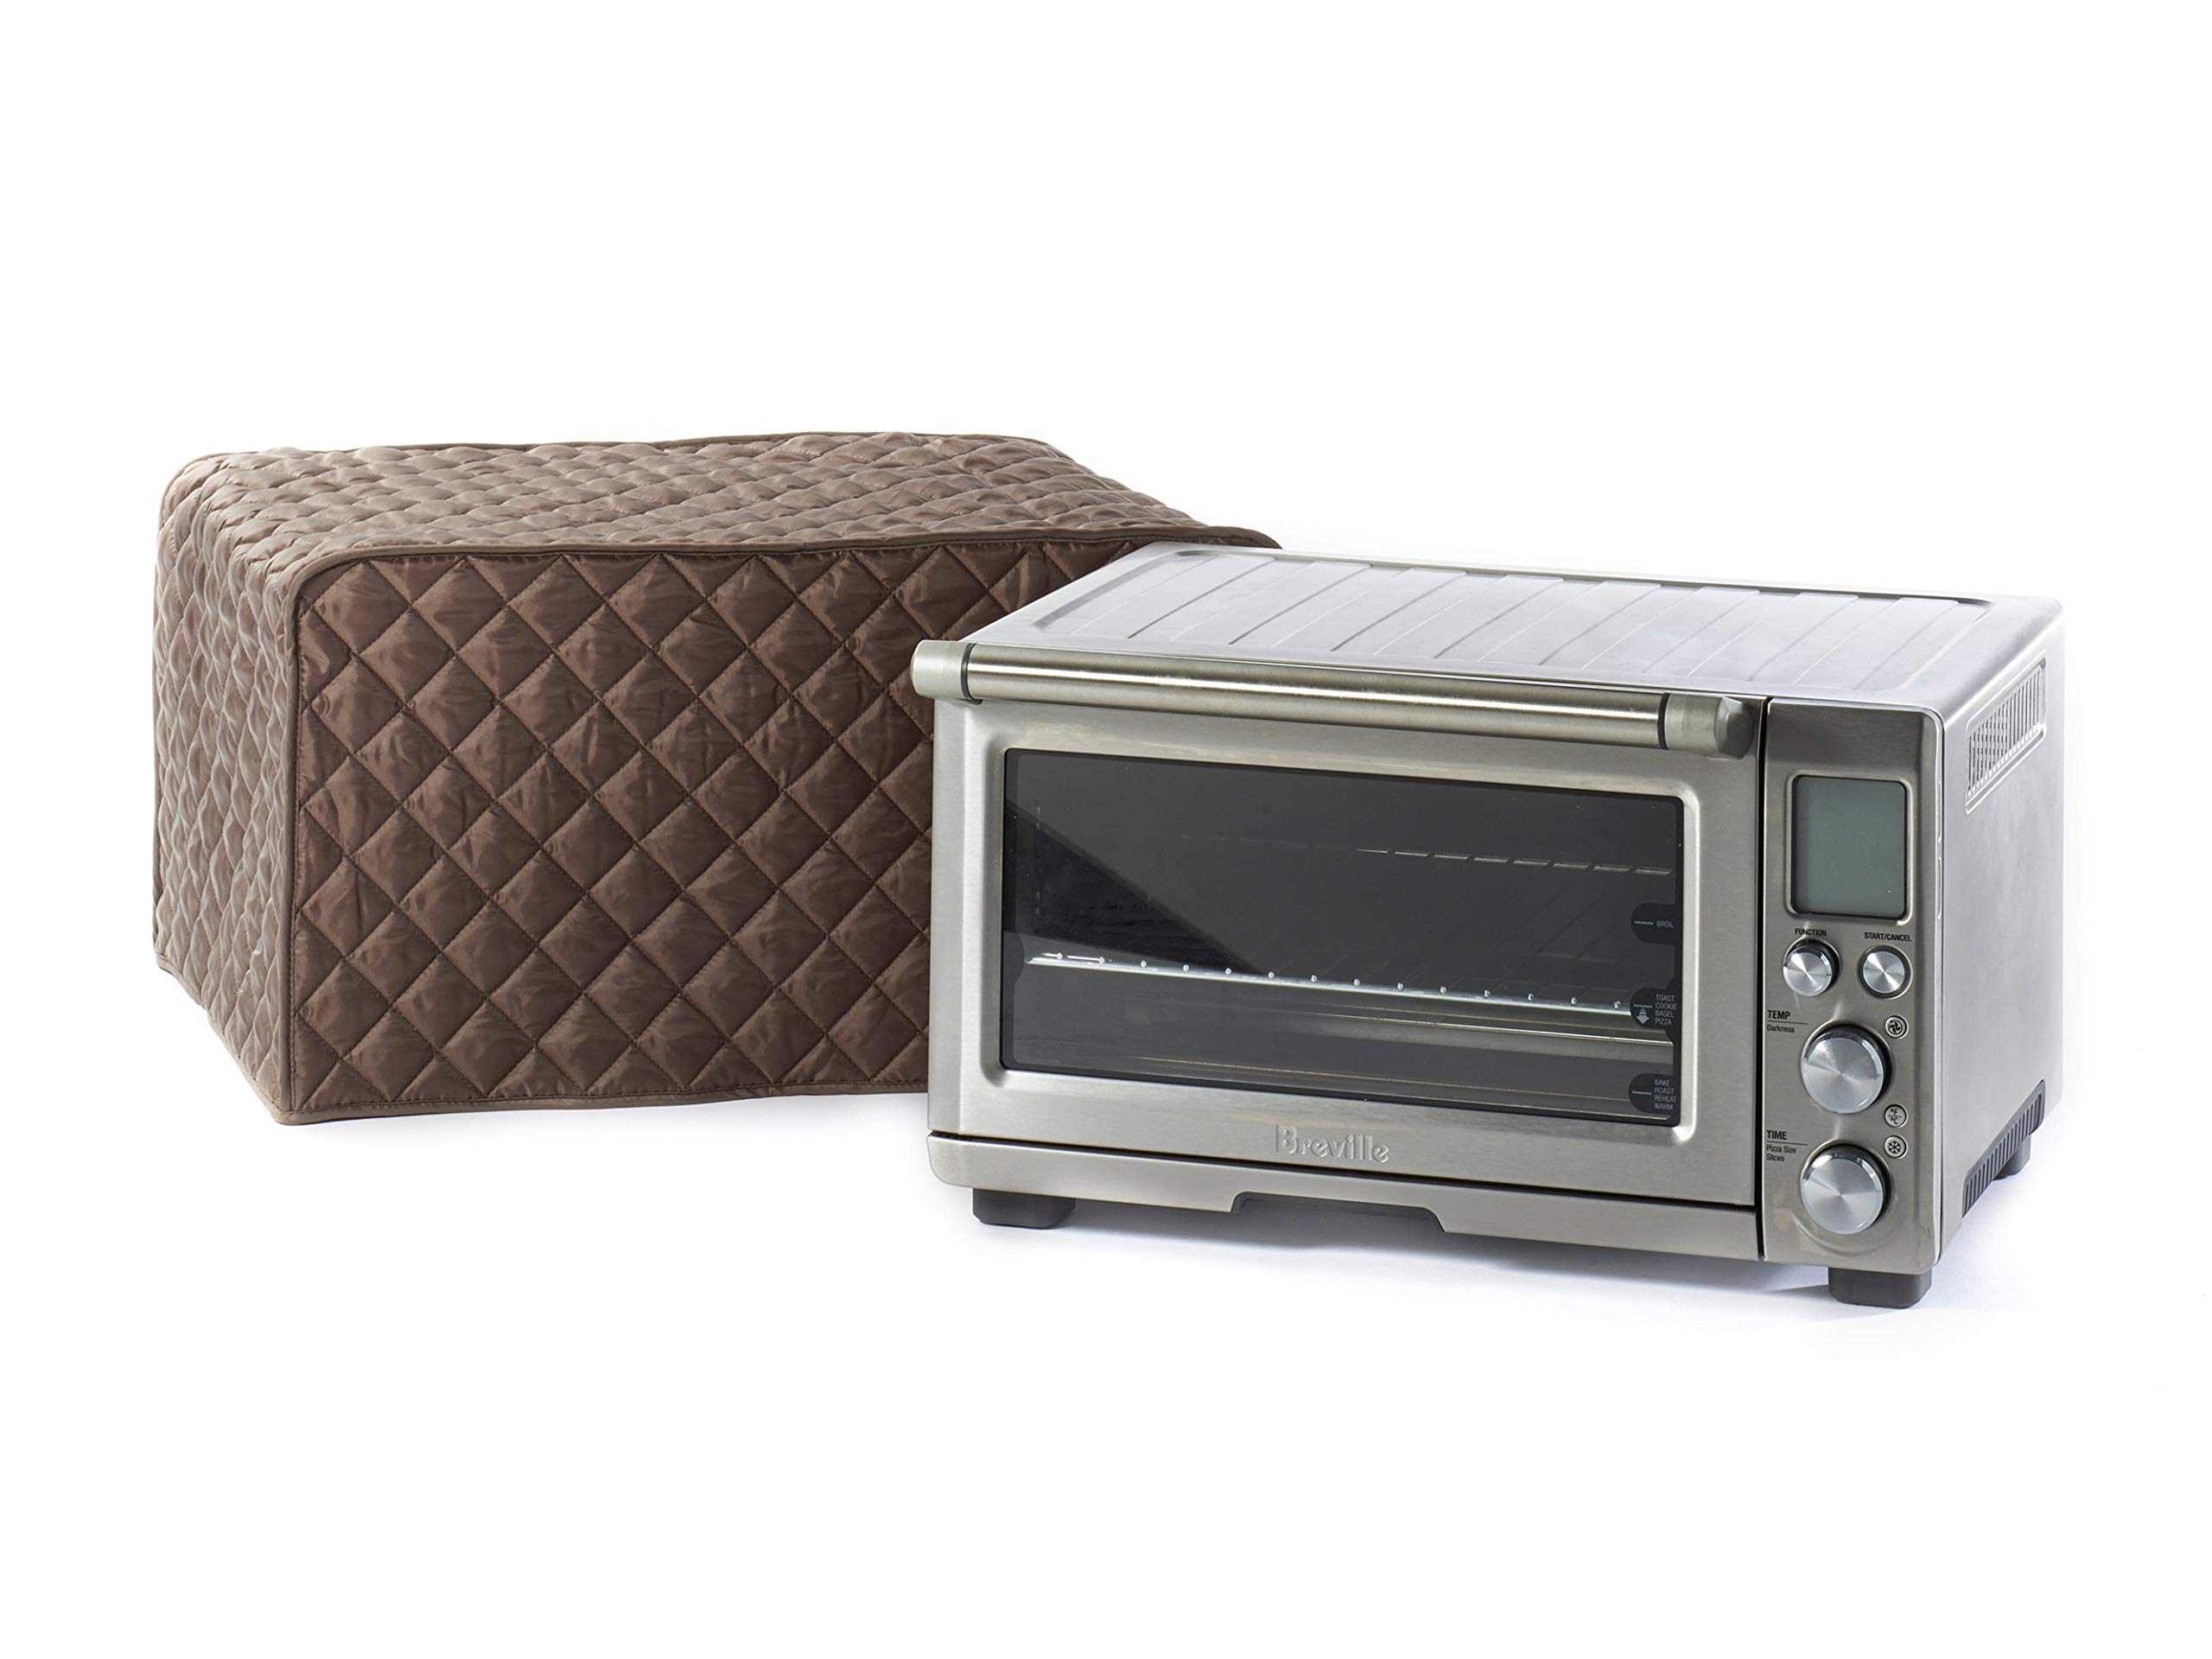 CoverMates – Toaster Oven Cover – 20W x 15D x 11H – Diamond Collection – 2 YR Warranty – Year Around Protection - Bronze by CoverMates